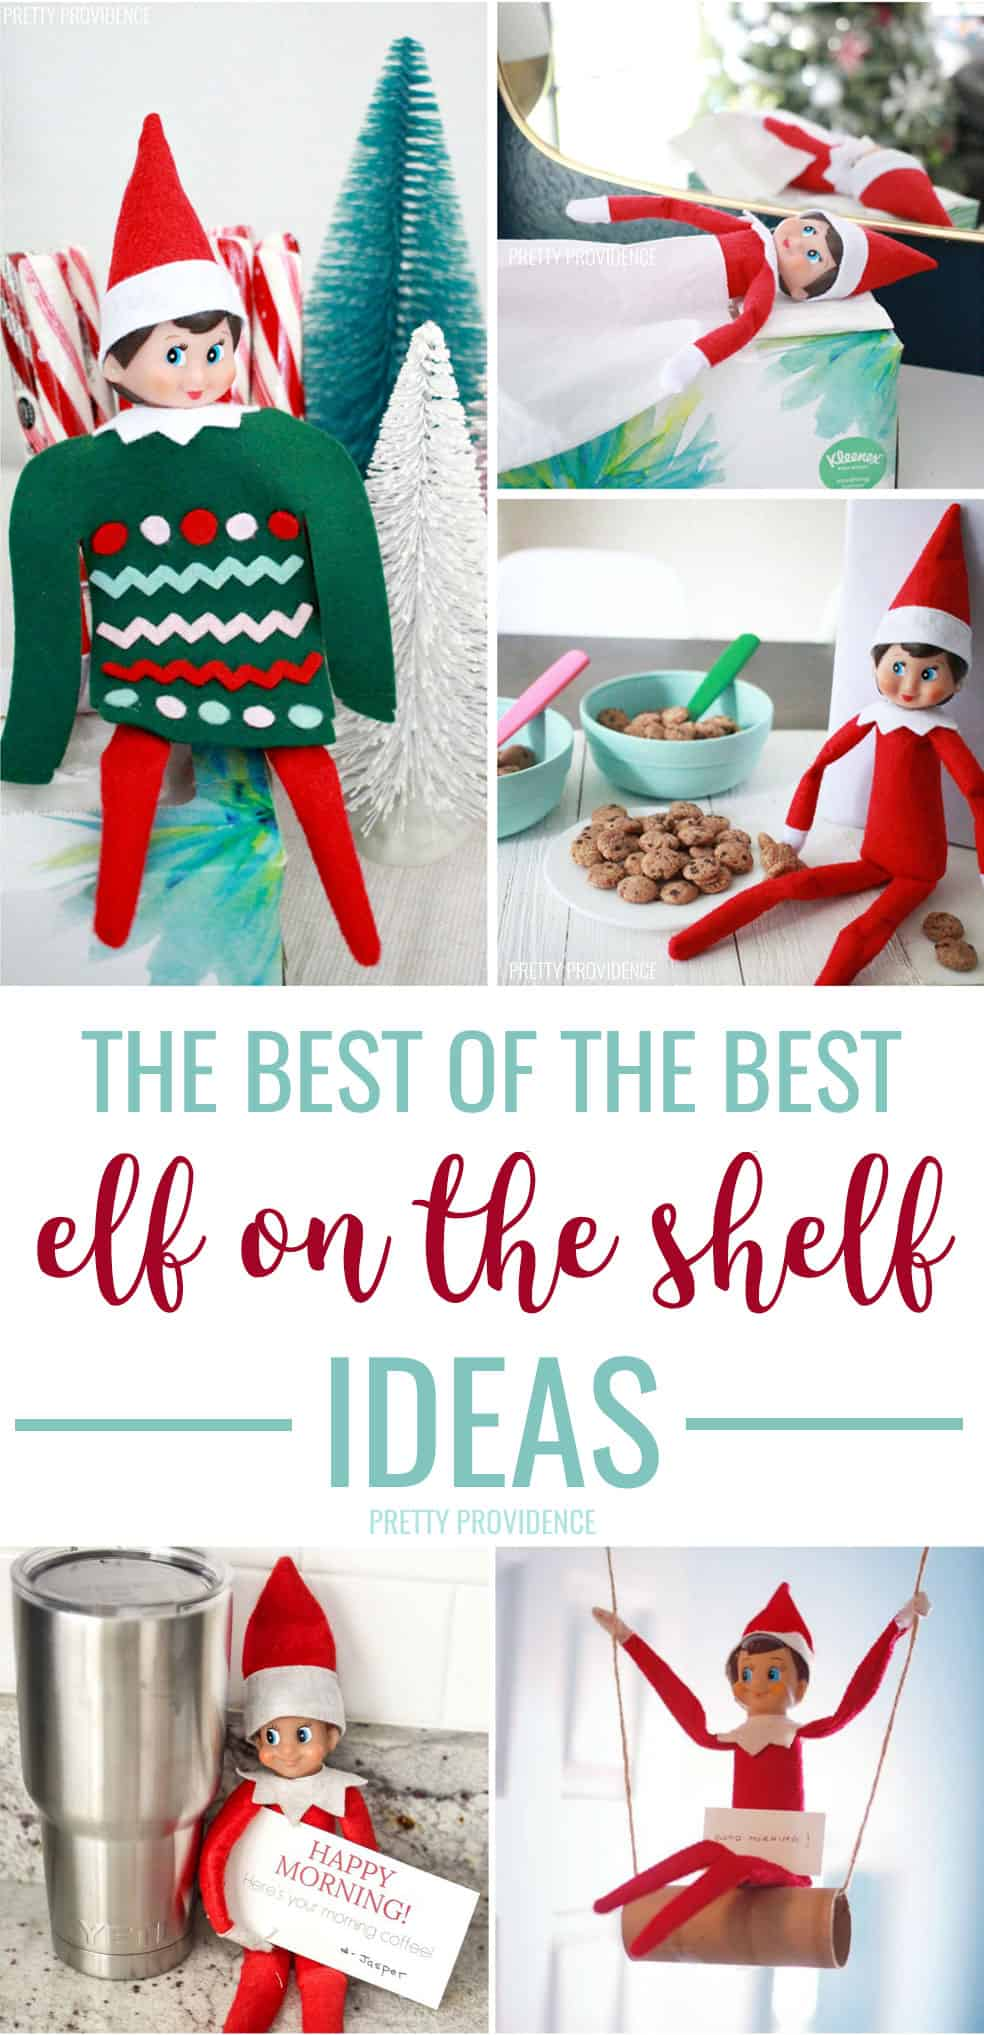 The best Elf on the Shelf ideas ever! These are cheap and easy things to do with your funny and mischievous elf! #elfontheshelf #elfontheshelfideas #elf #christmas #christmasideas #funforkids